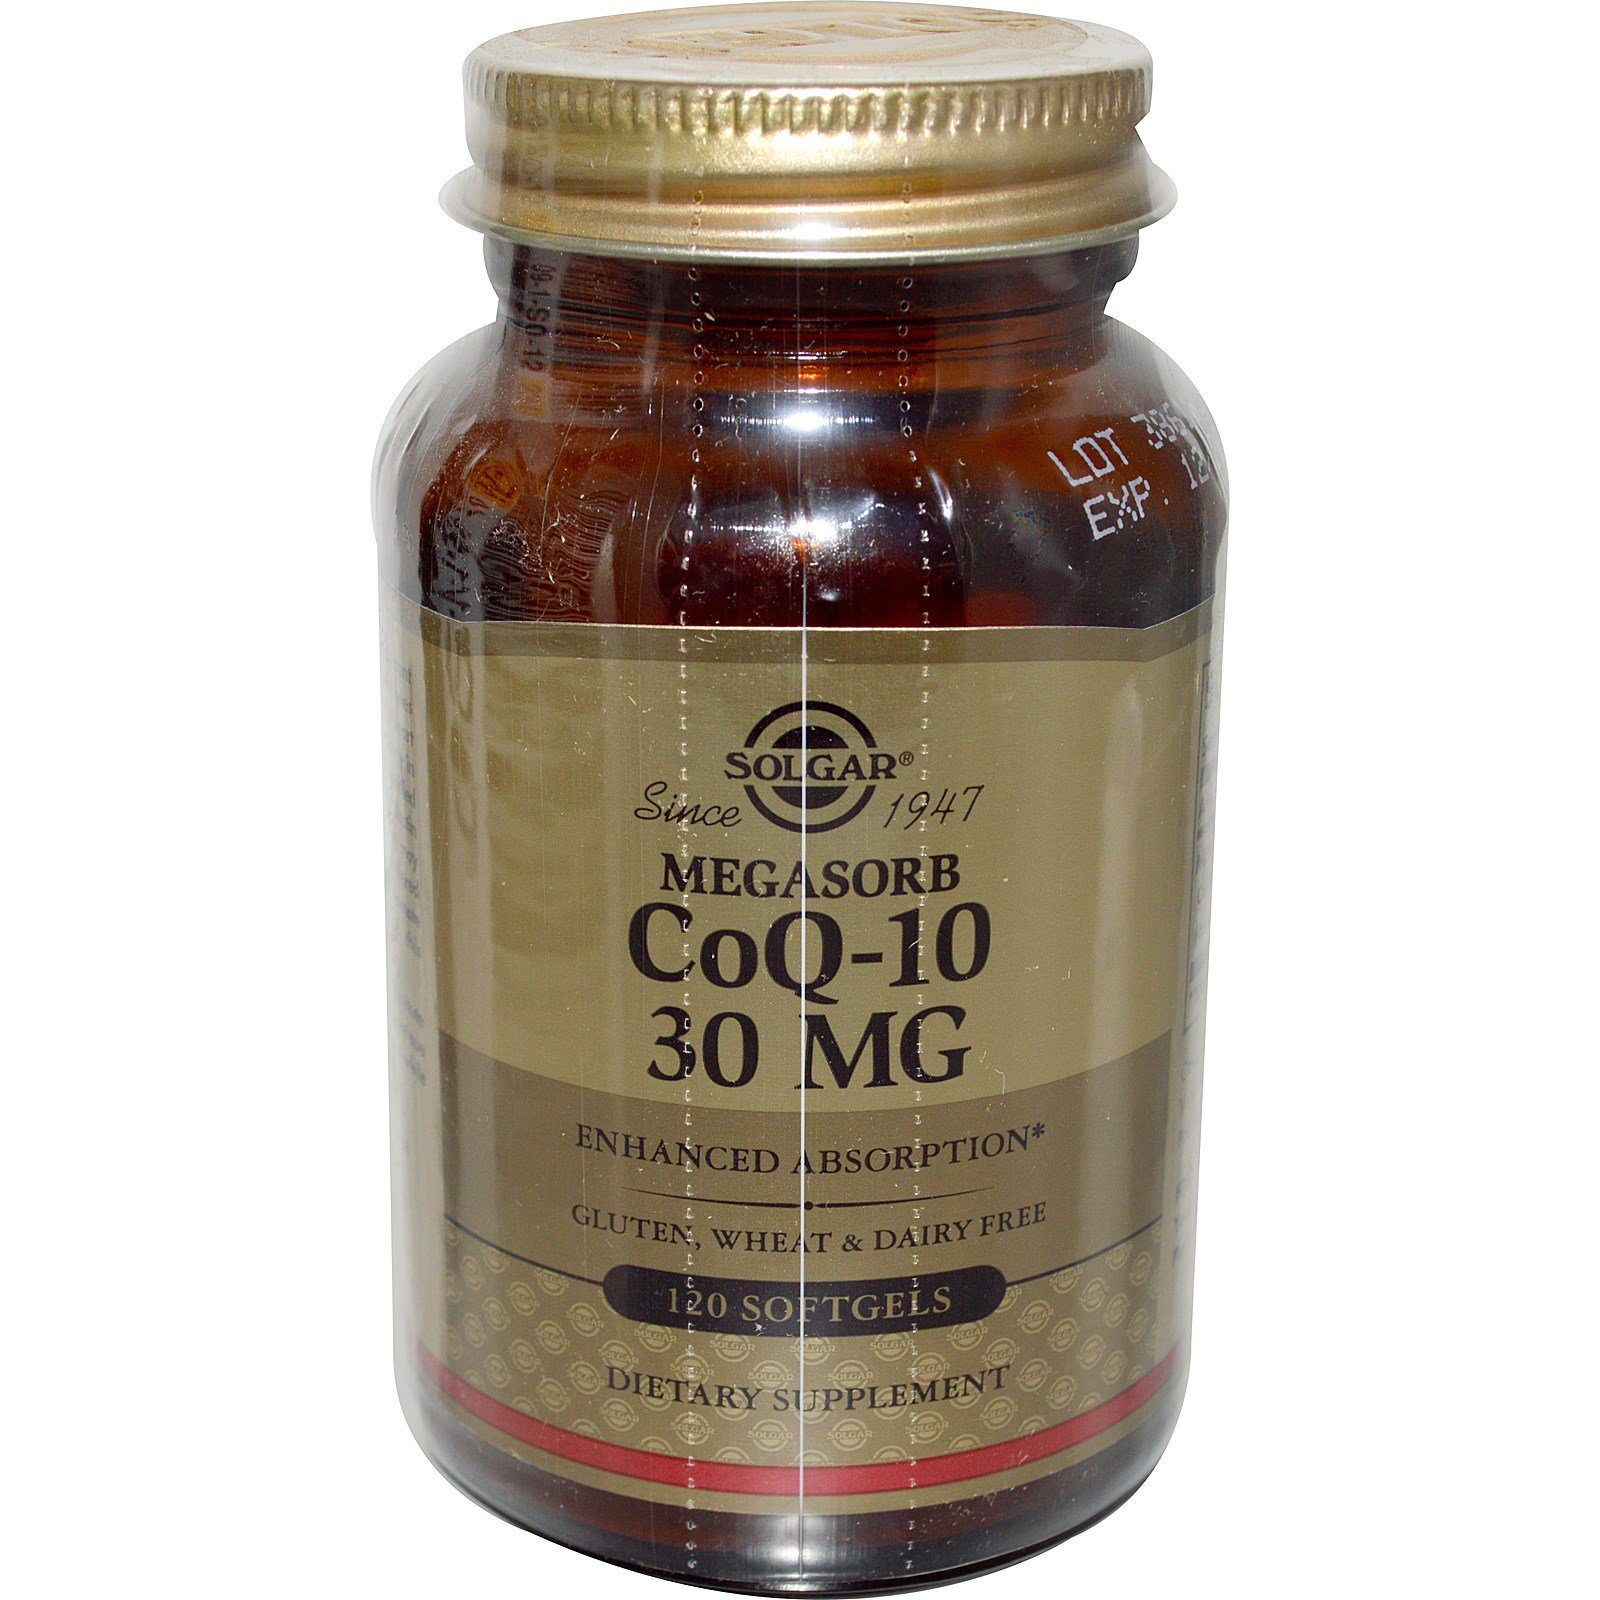 Solgar, Megasorb CoQ-10, 30mg, 120 Softgels